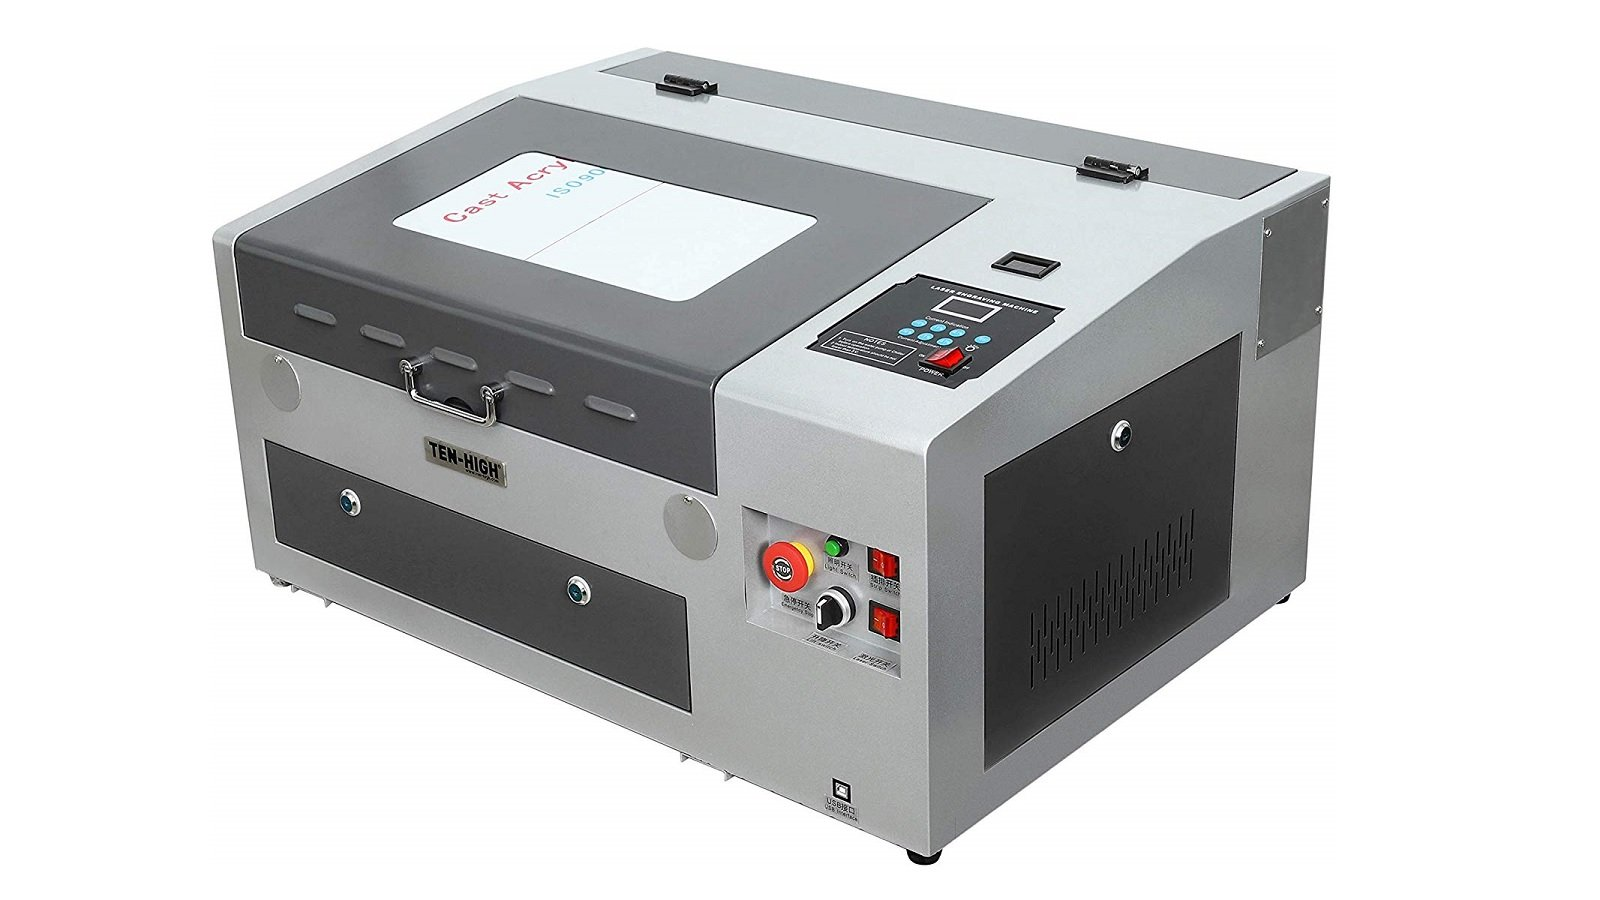 TEN-HIGH 40W Laser Engraving Machine – Review the Specs | All3DP